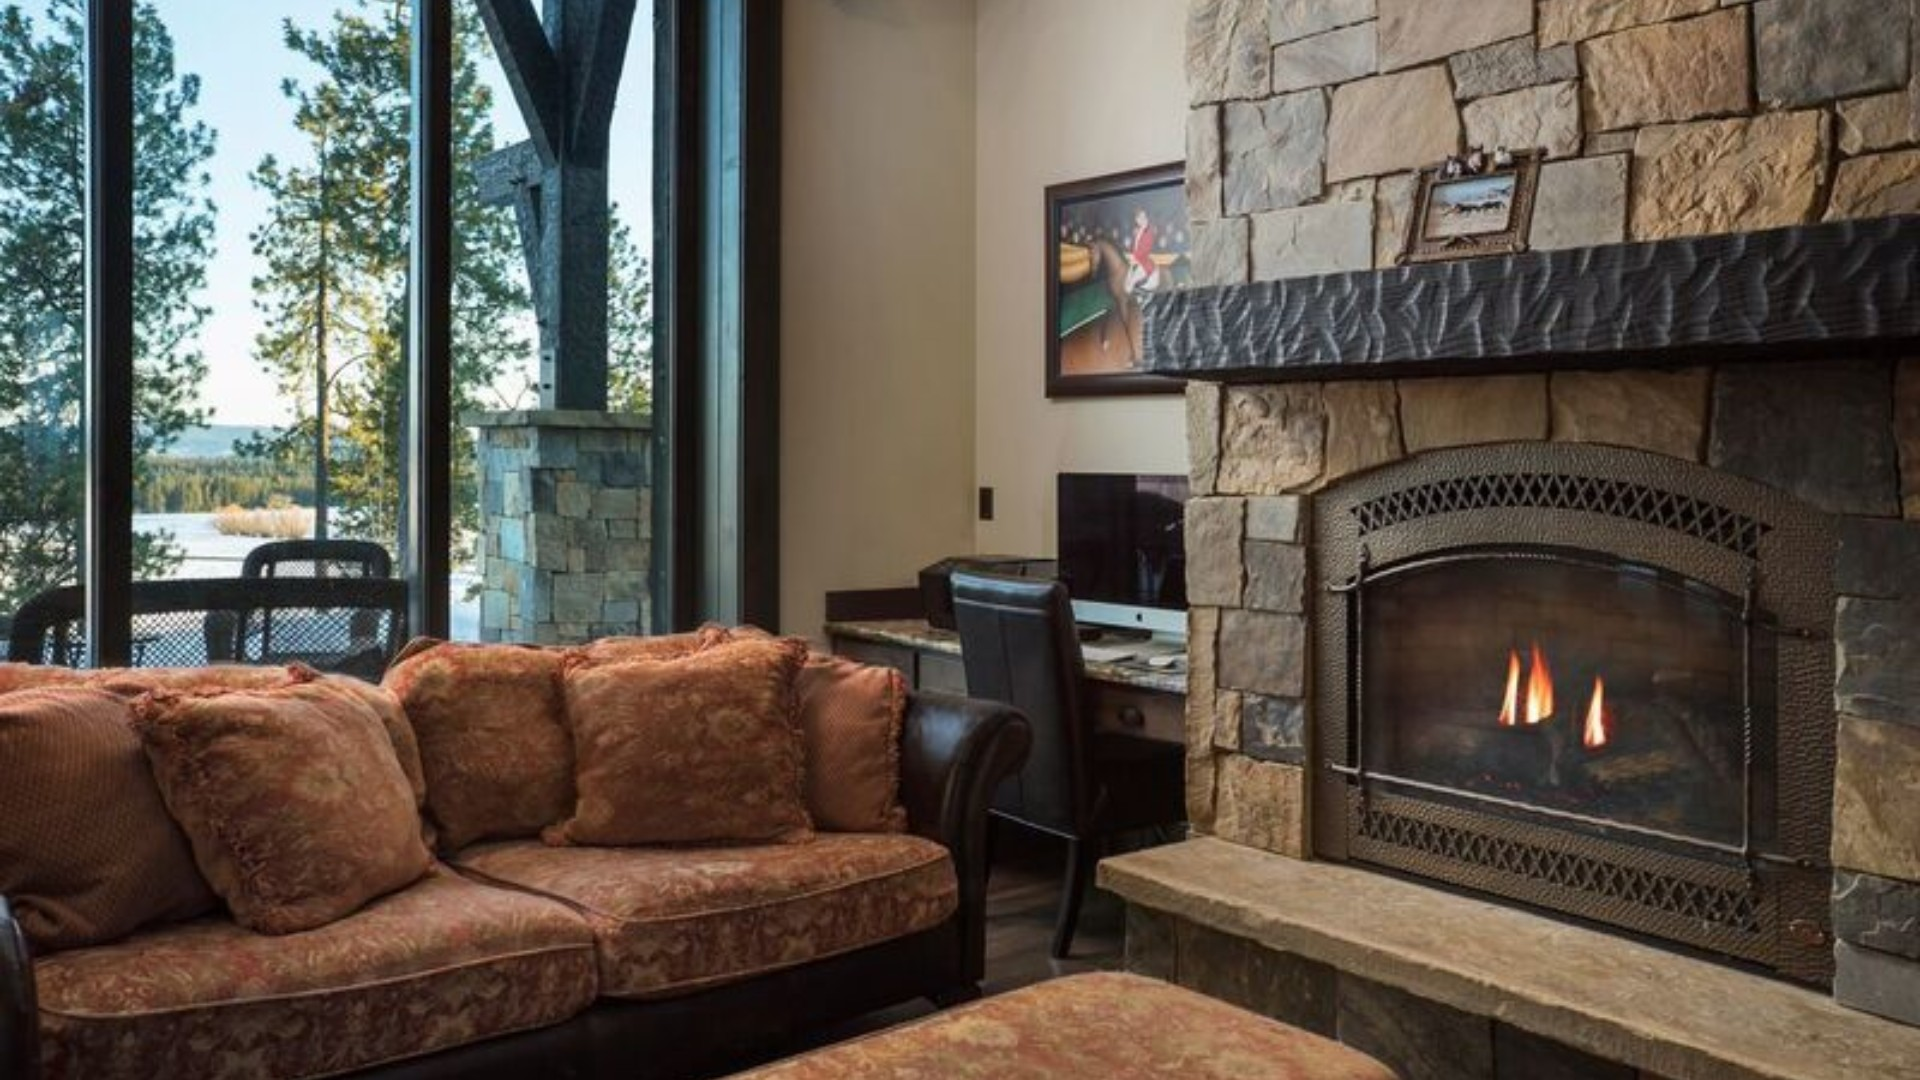 large stone fireplace with a couch